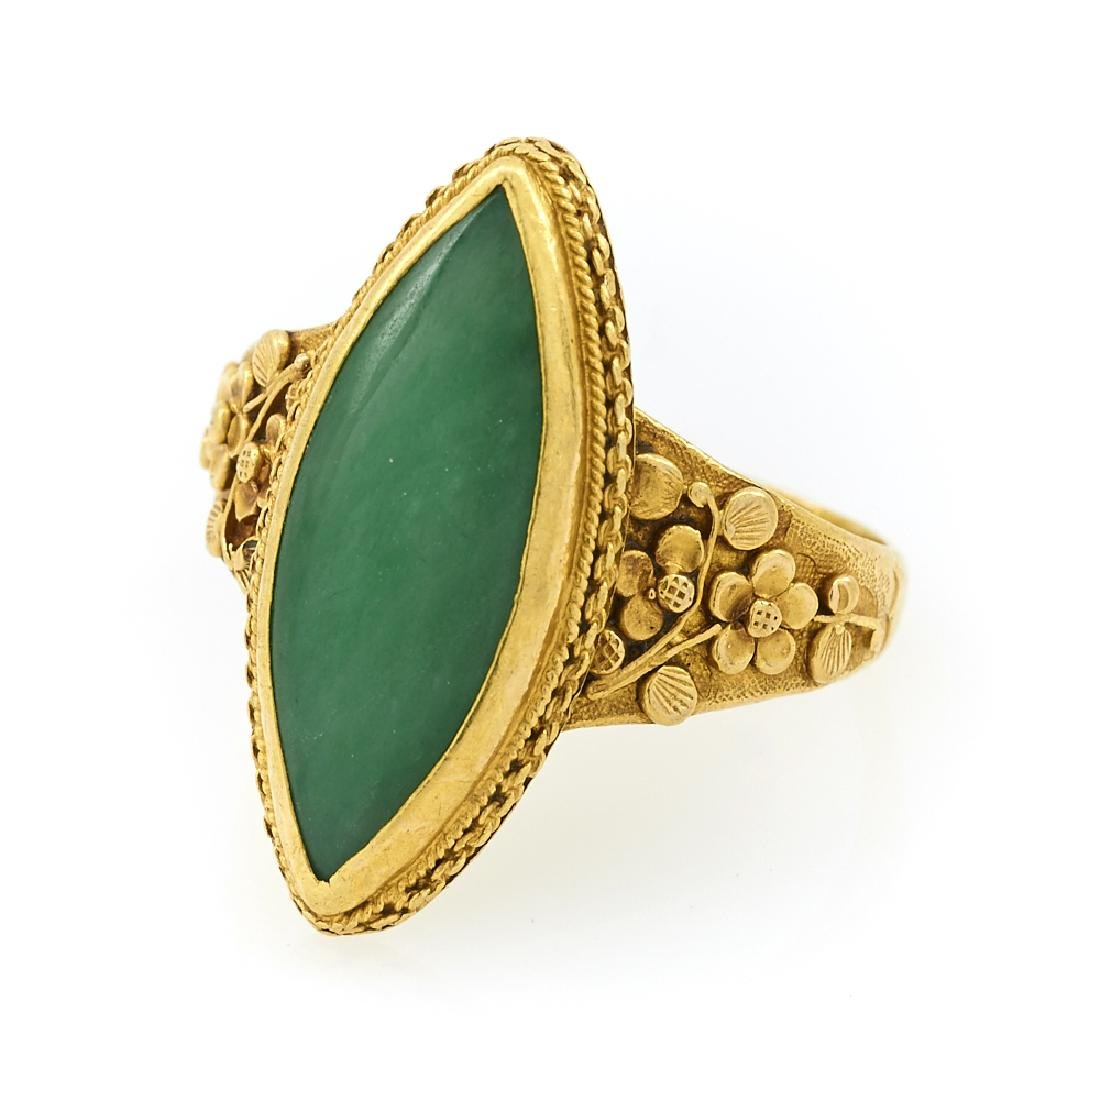 22k Yellow gold and jade ring.